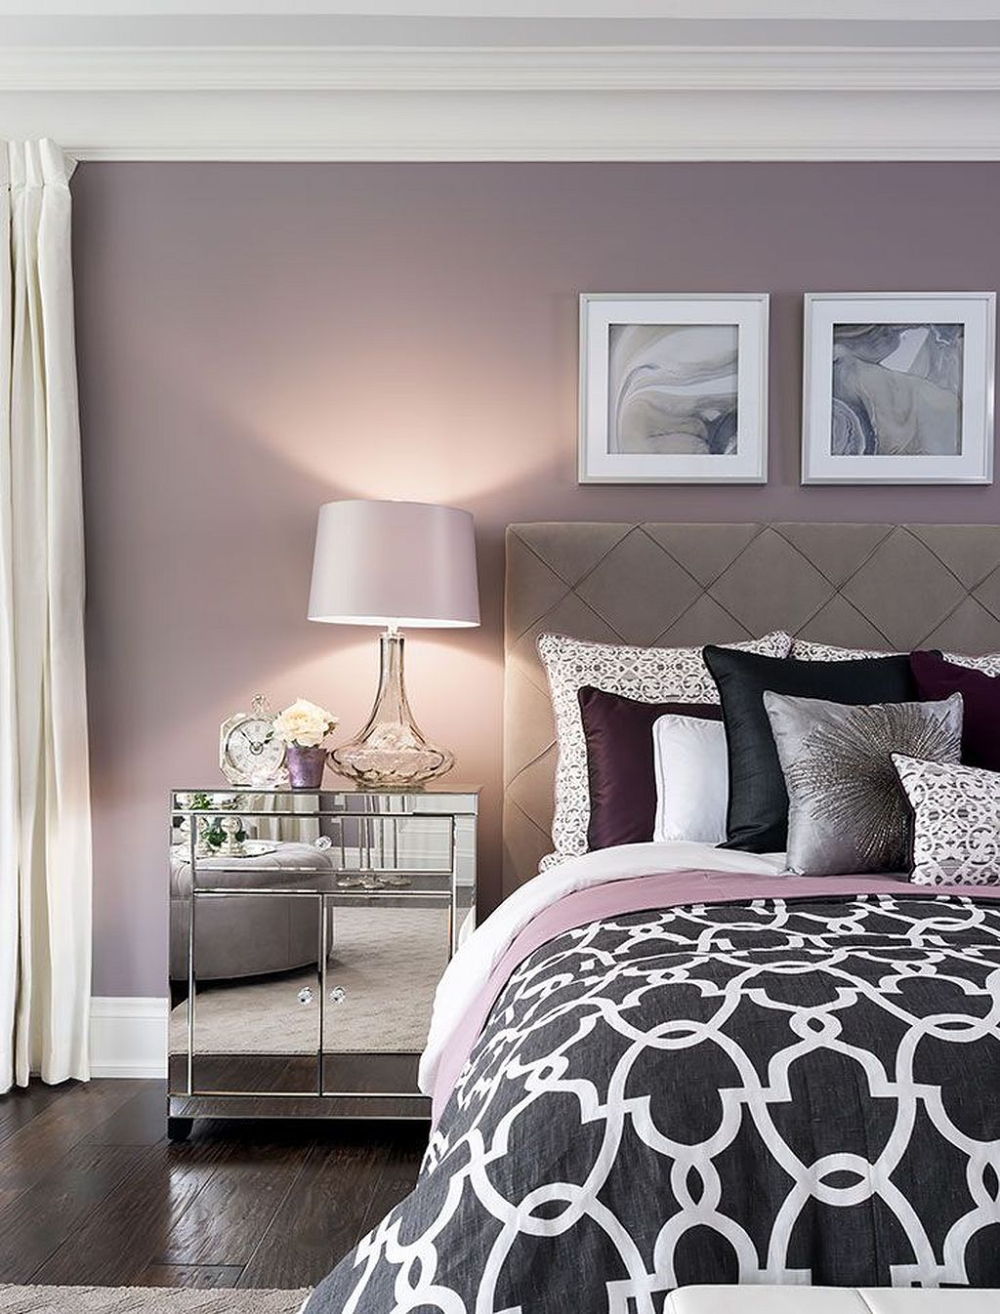 Amazing Bedroom Decorating Ideas For Couples (8) | Small ...